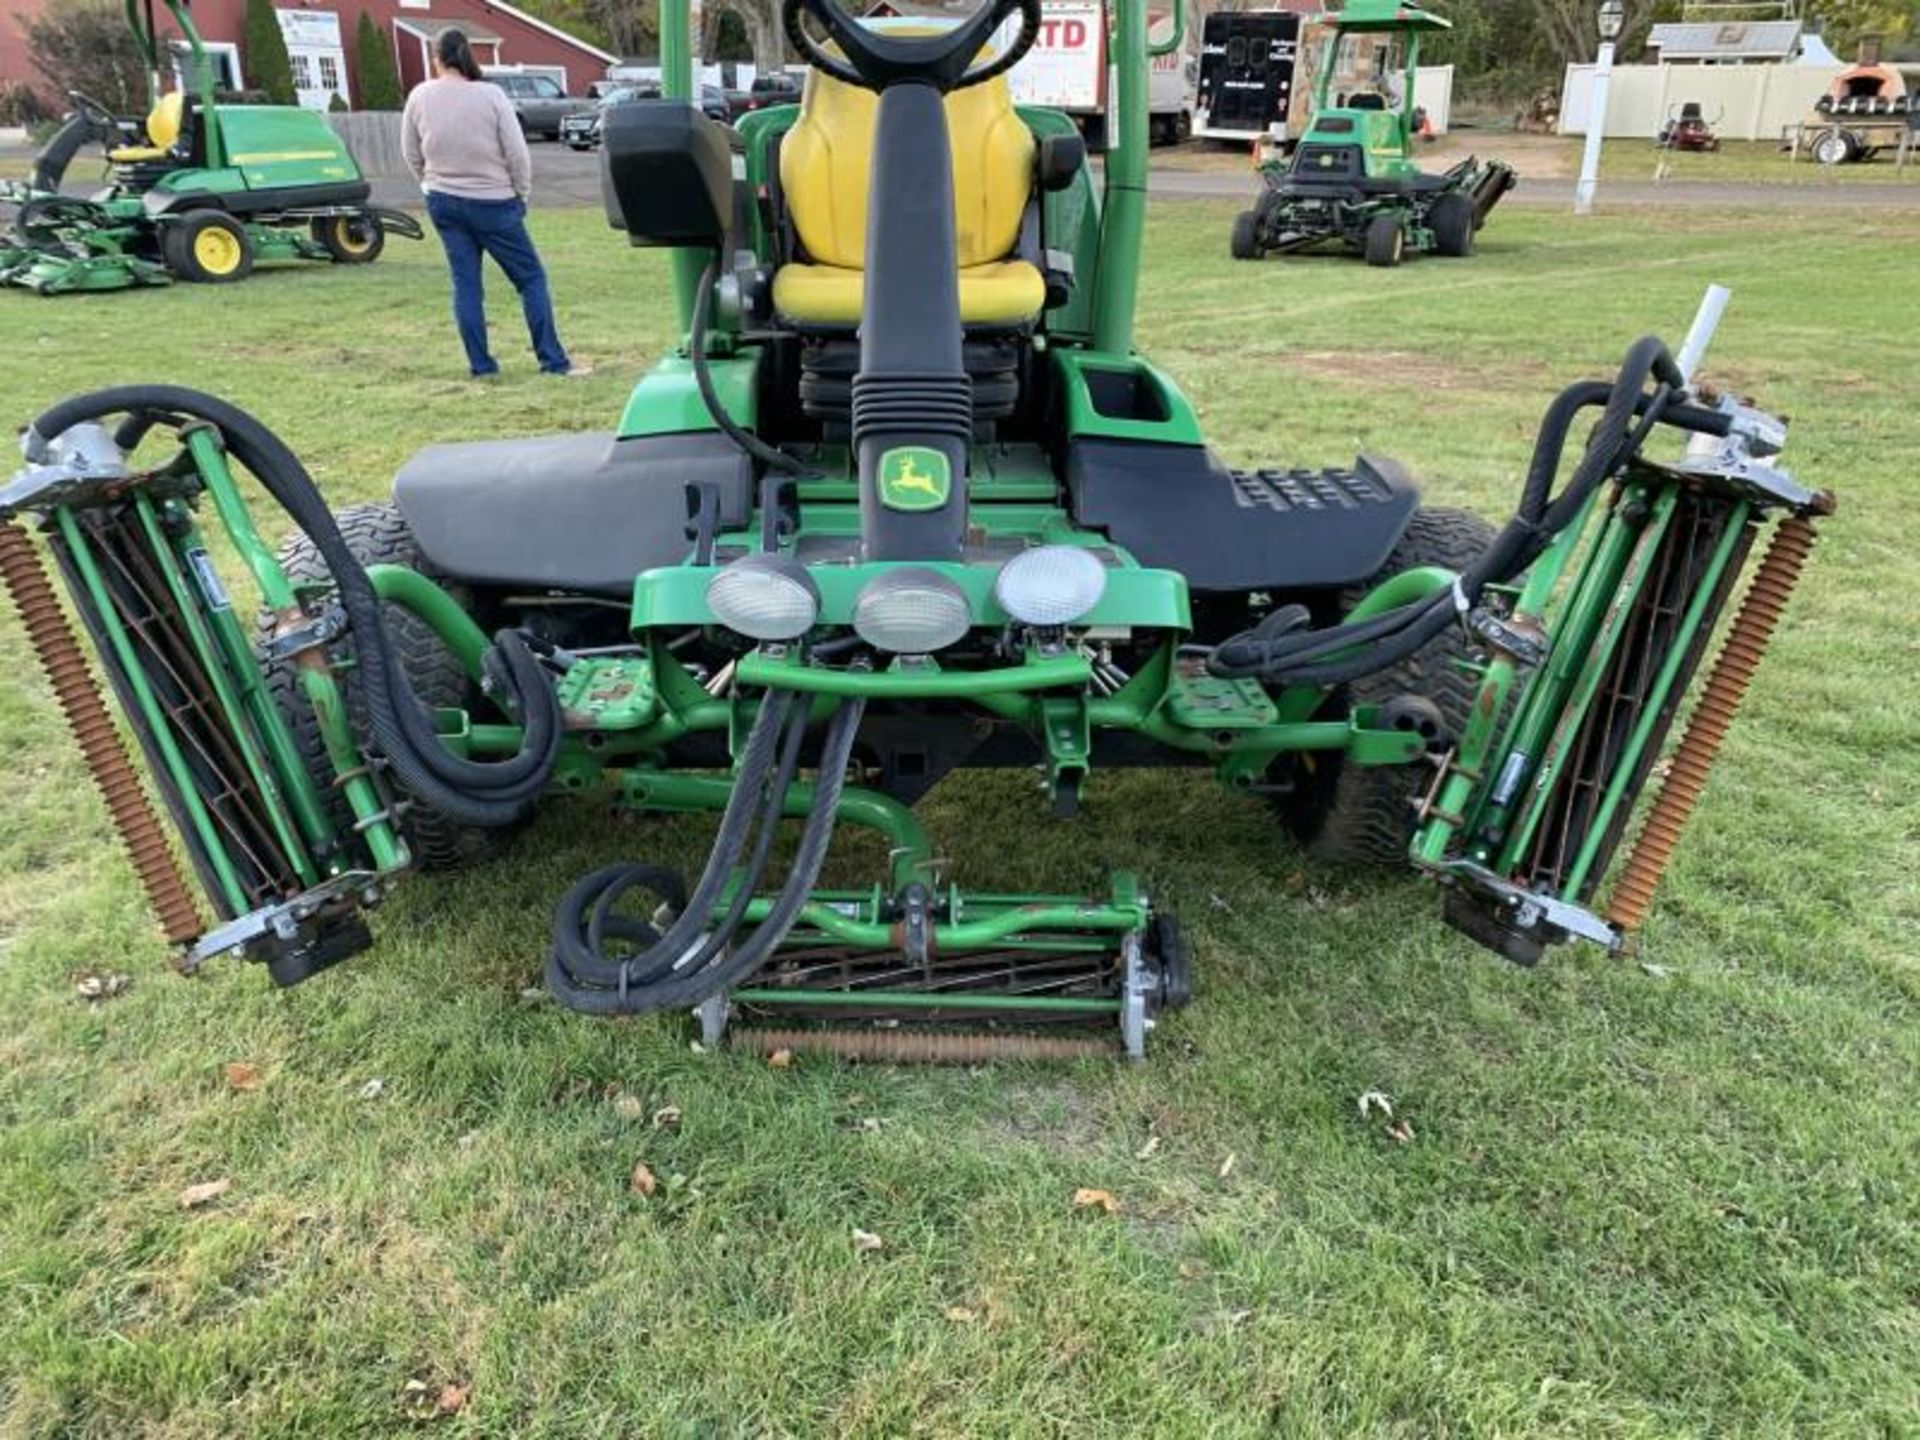 2016 John Deere 7500A Precision Cut 2WD T4, 2,355 Hours, SN: 1TC750AVLGR030141 - Image 9 of 17